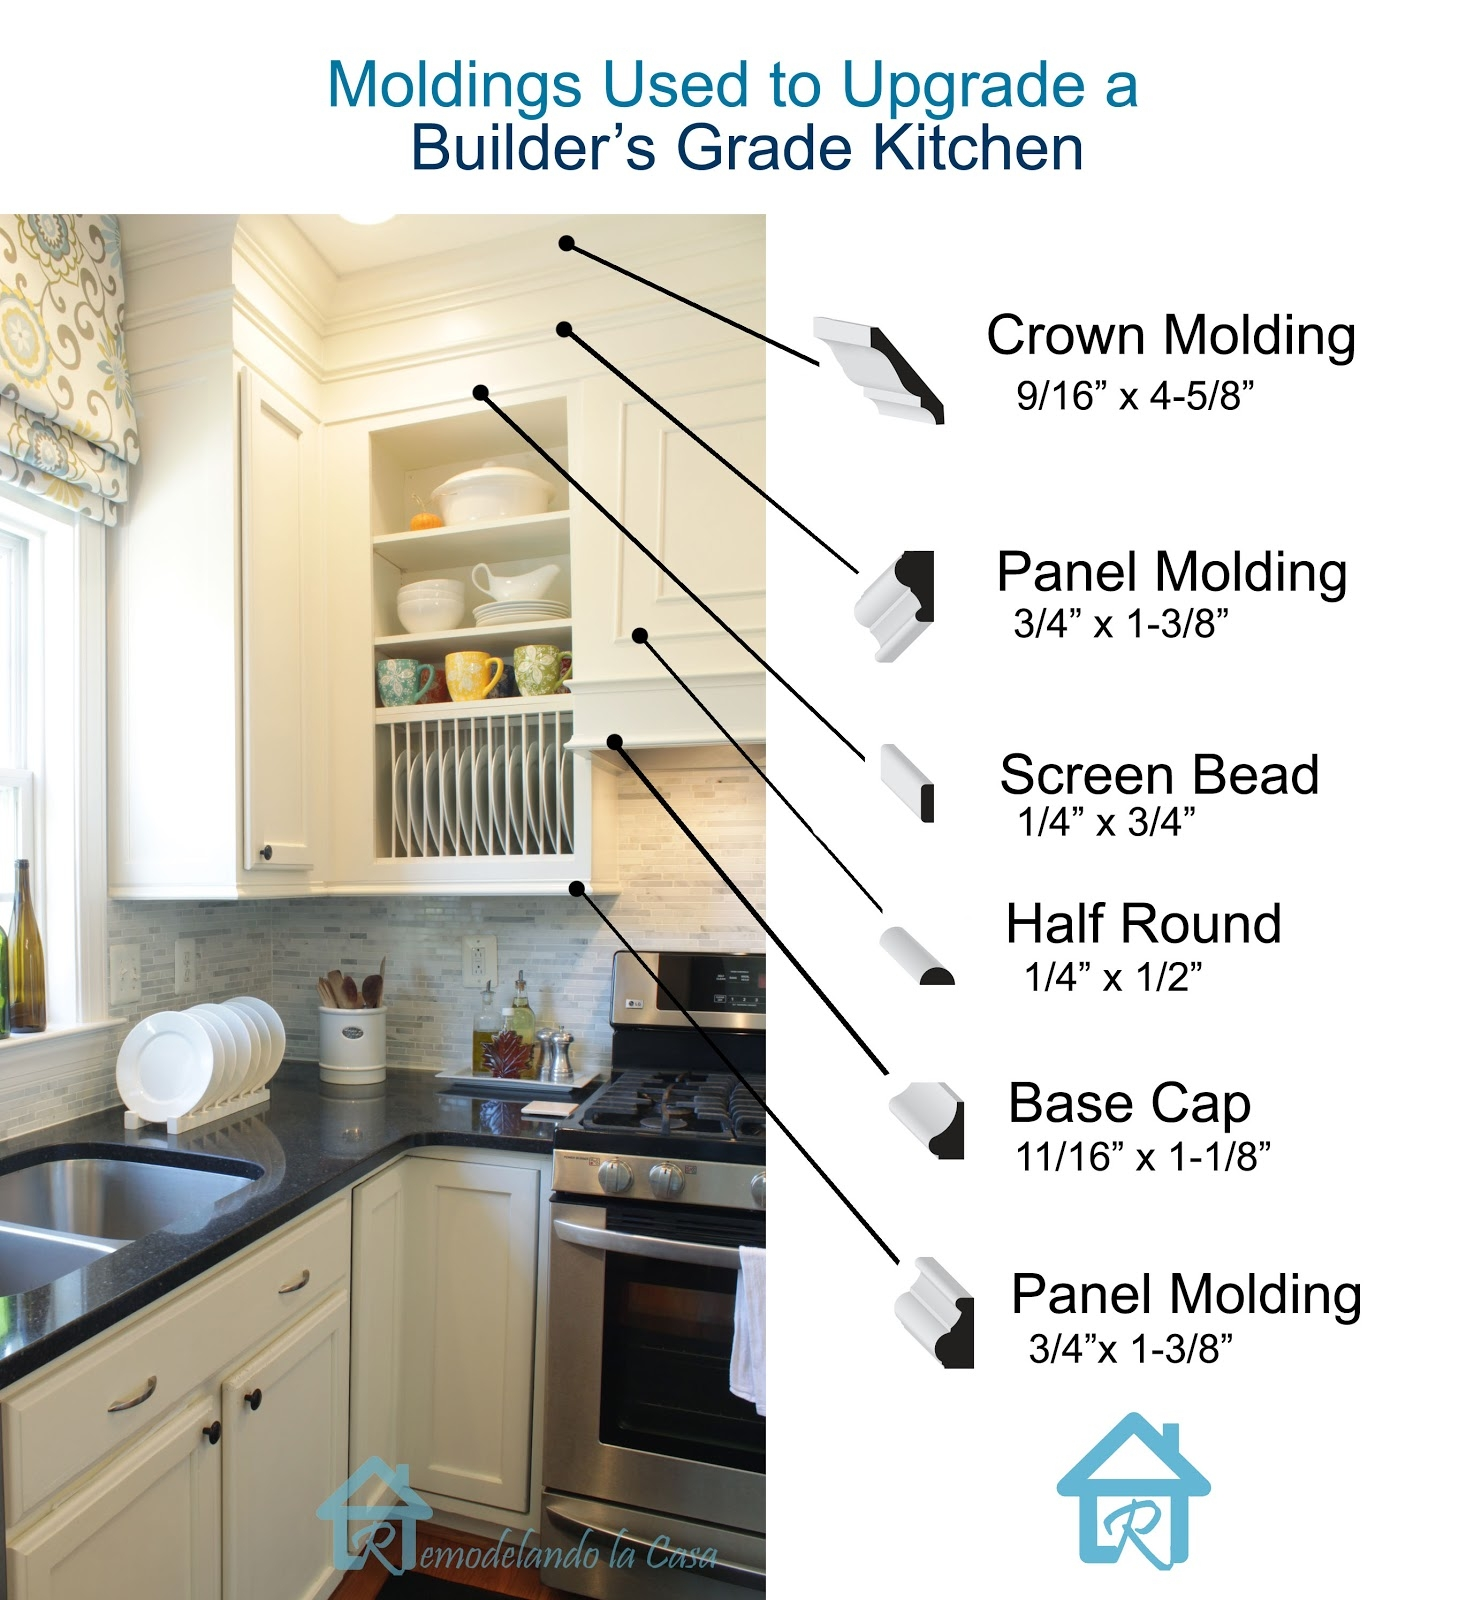 Space Above Kitchen Cabinets Called